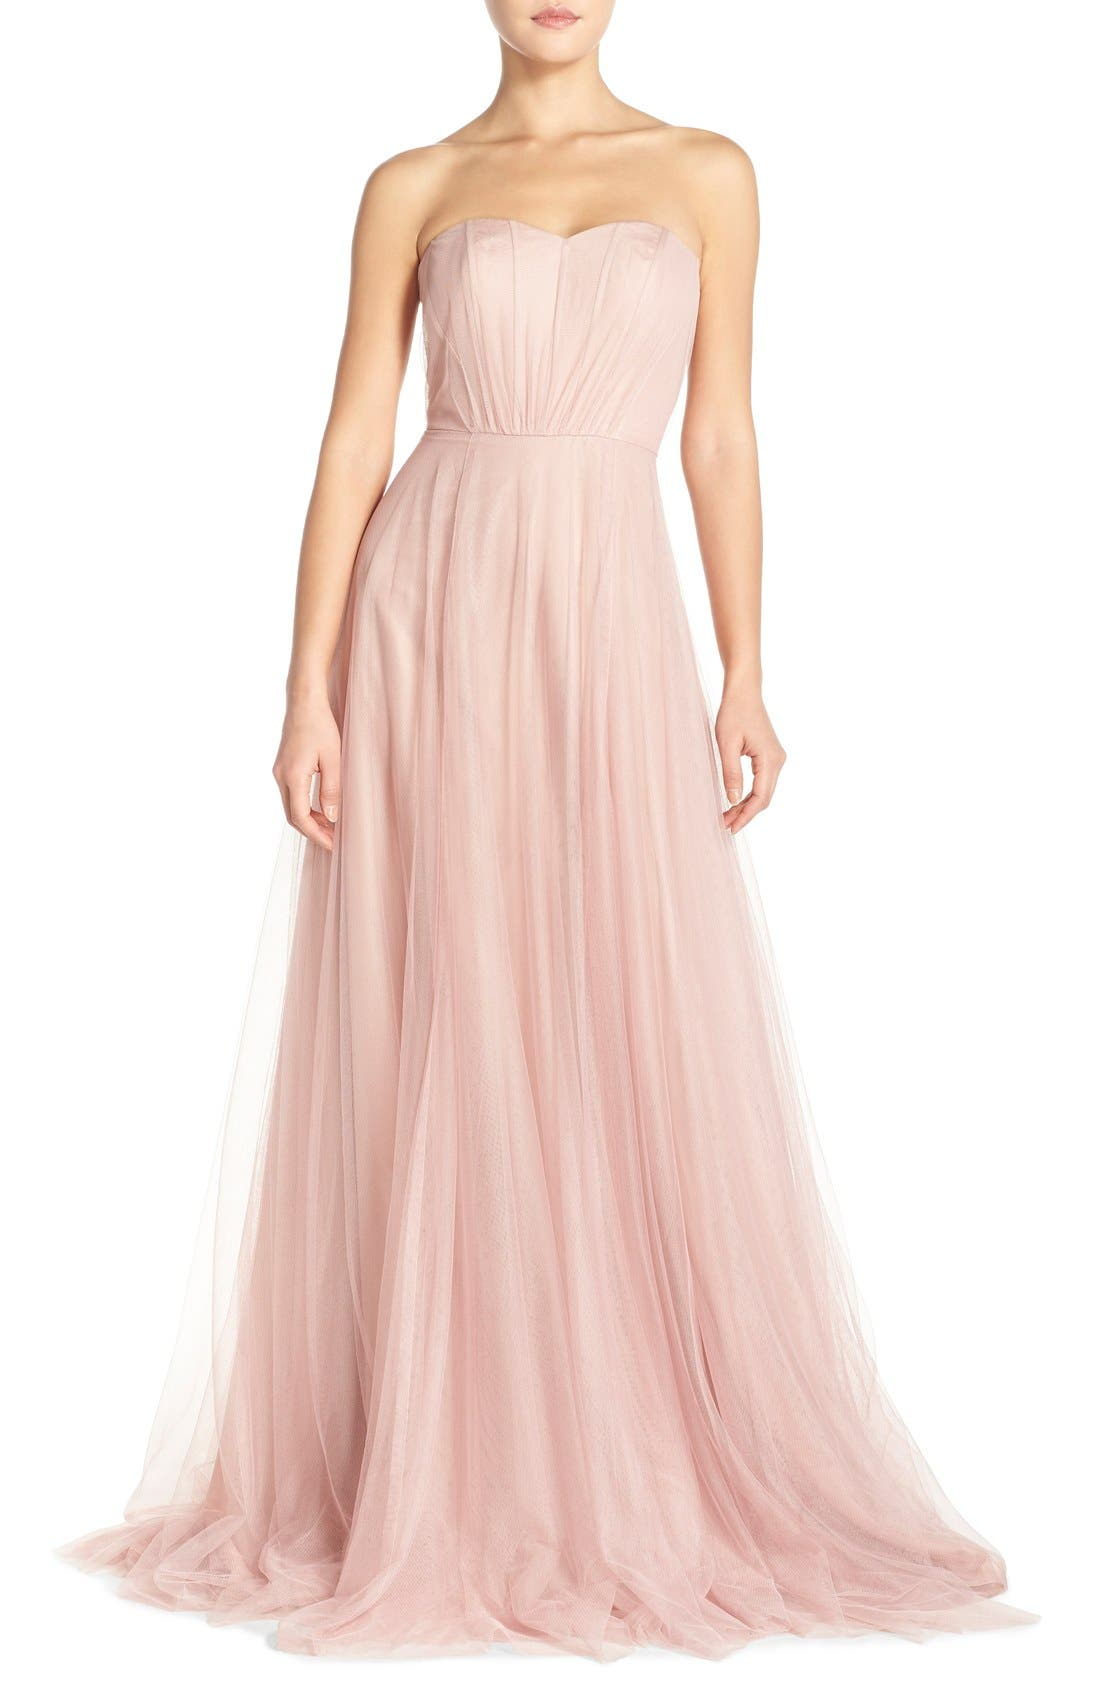 Alternate Image 1 Selected - Monique Lhuillier Bridesmaids Strapless Tulle Gown